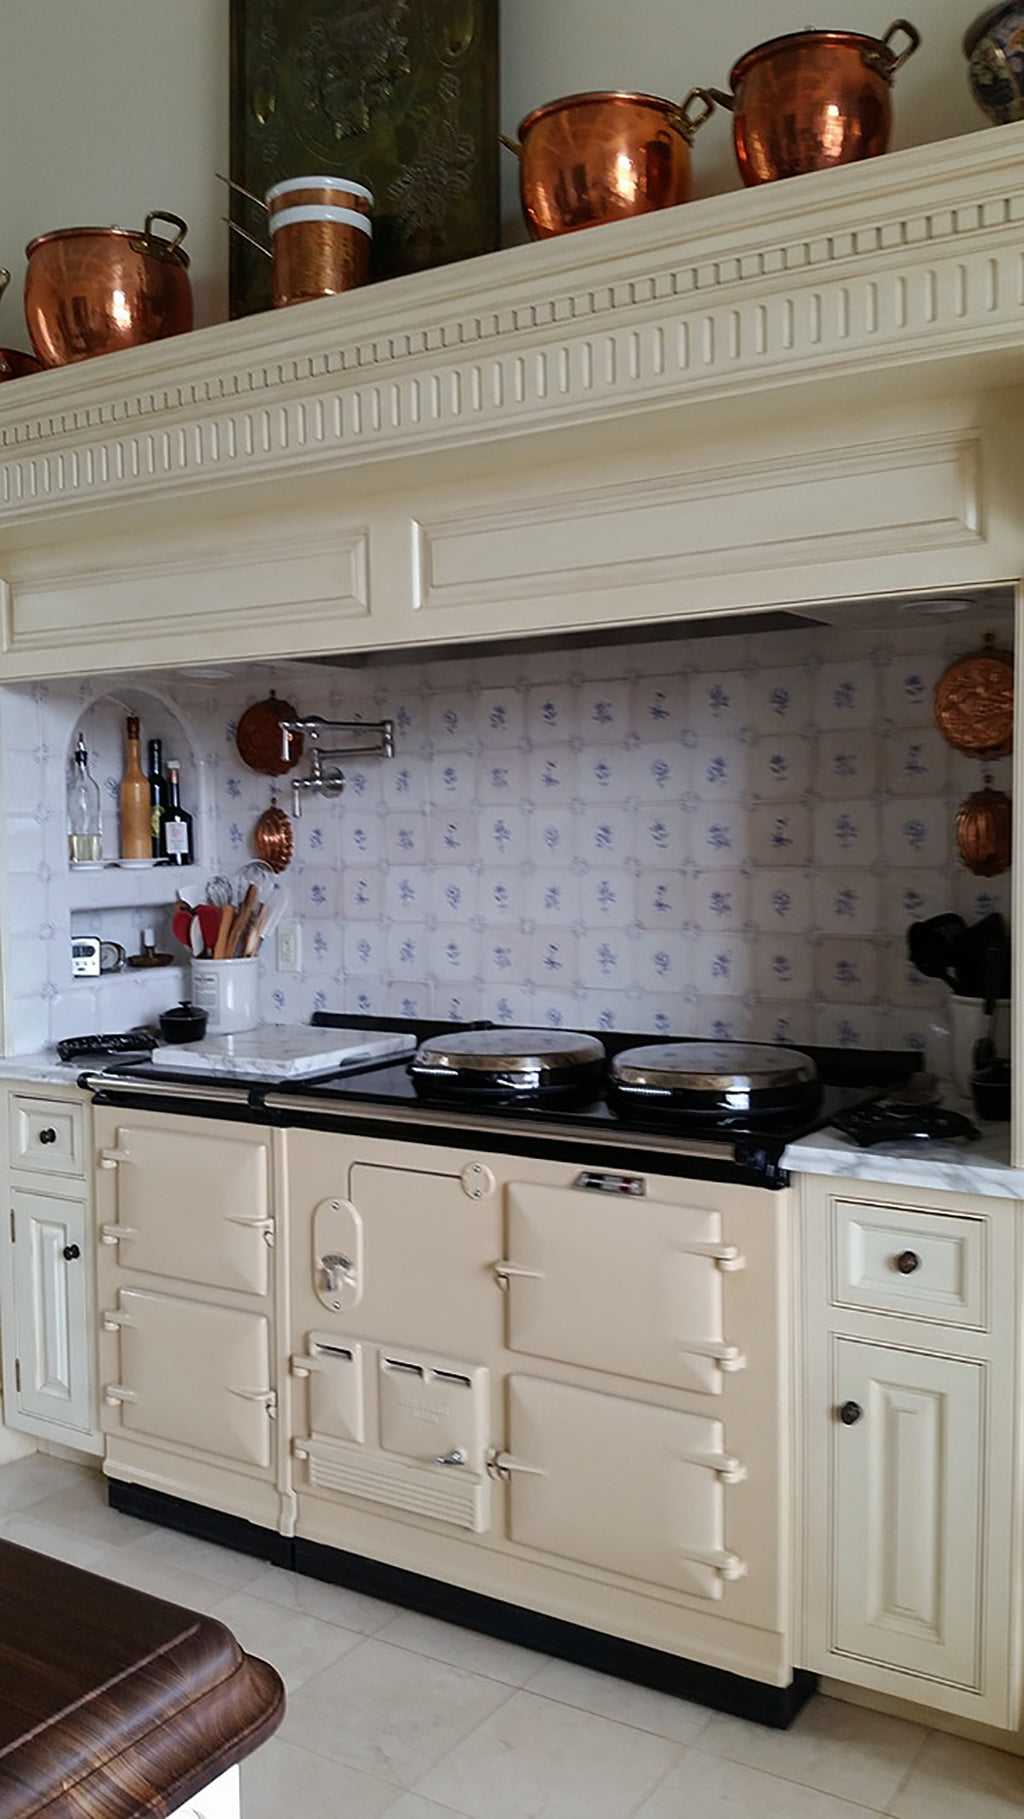 Blake & Bull happy customers good customer service re-enamelling re-coating re-colouring and conversions of Aga range cookers